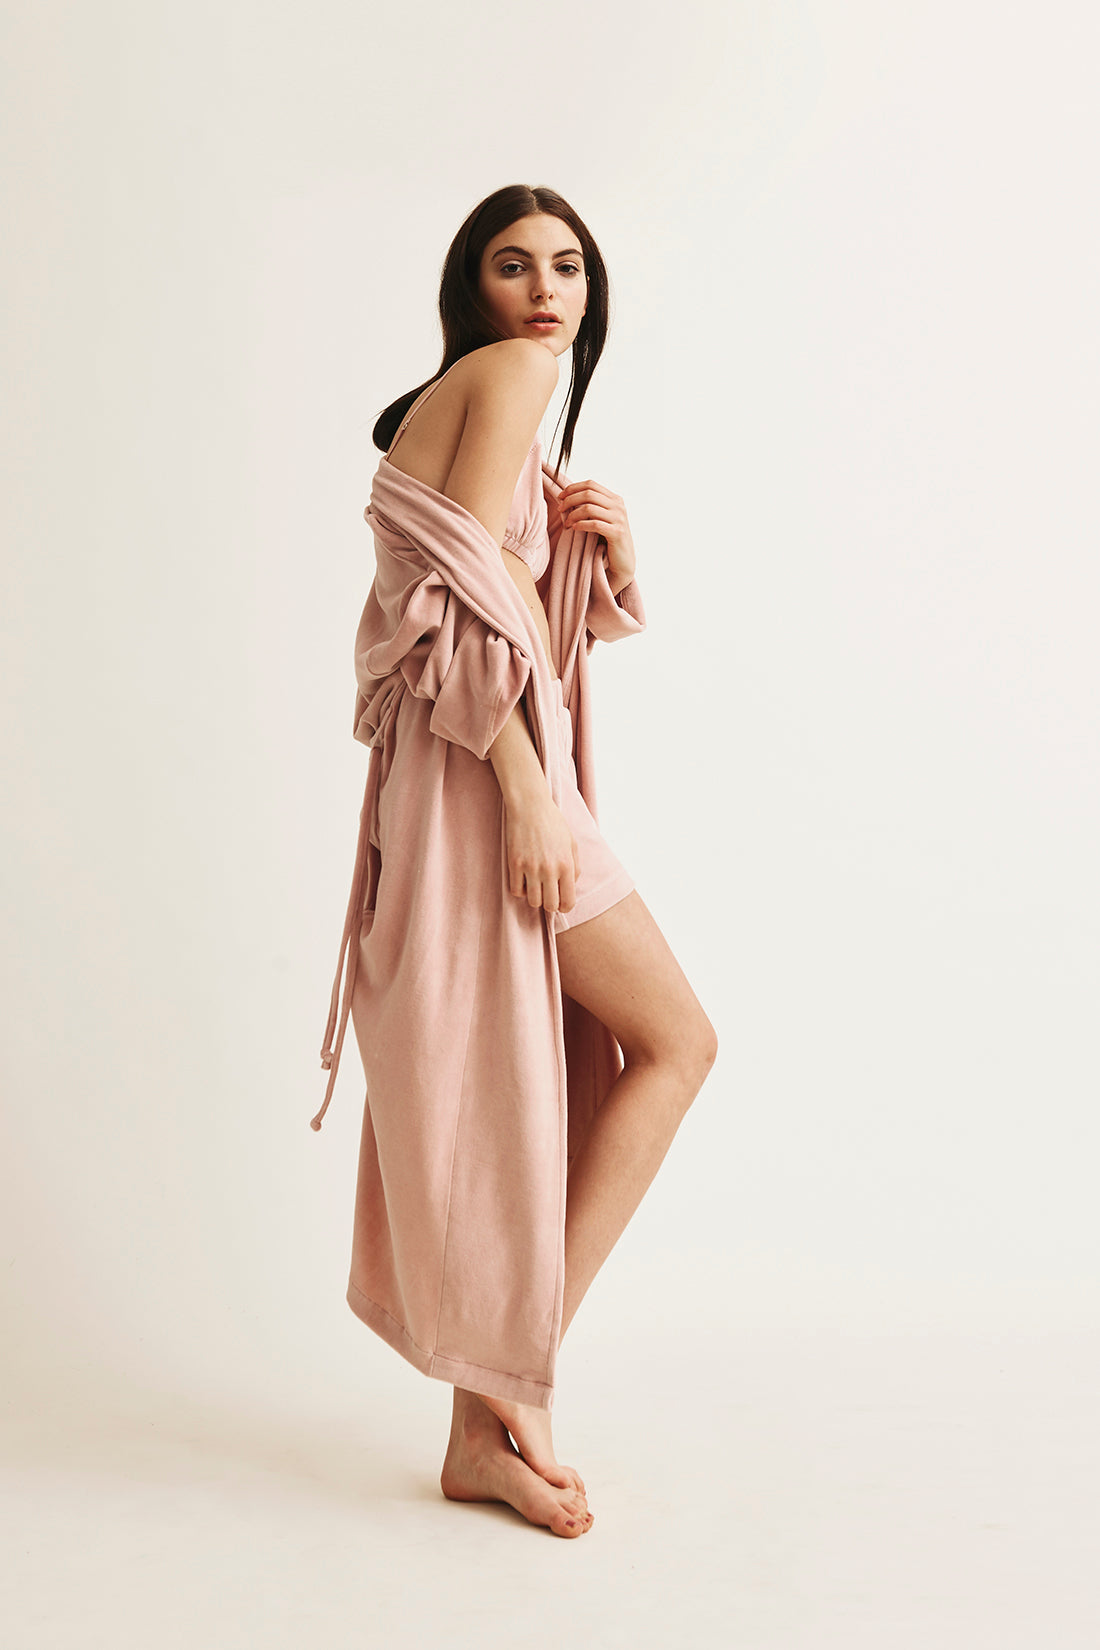 Soften Up Your Wardrobe With These Soft Pink Styles